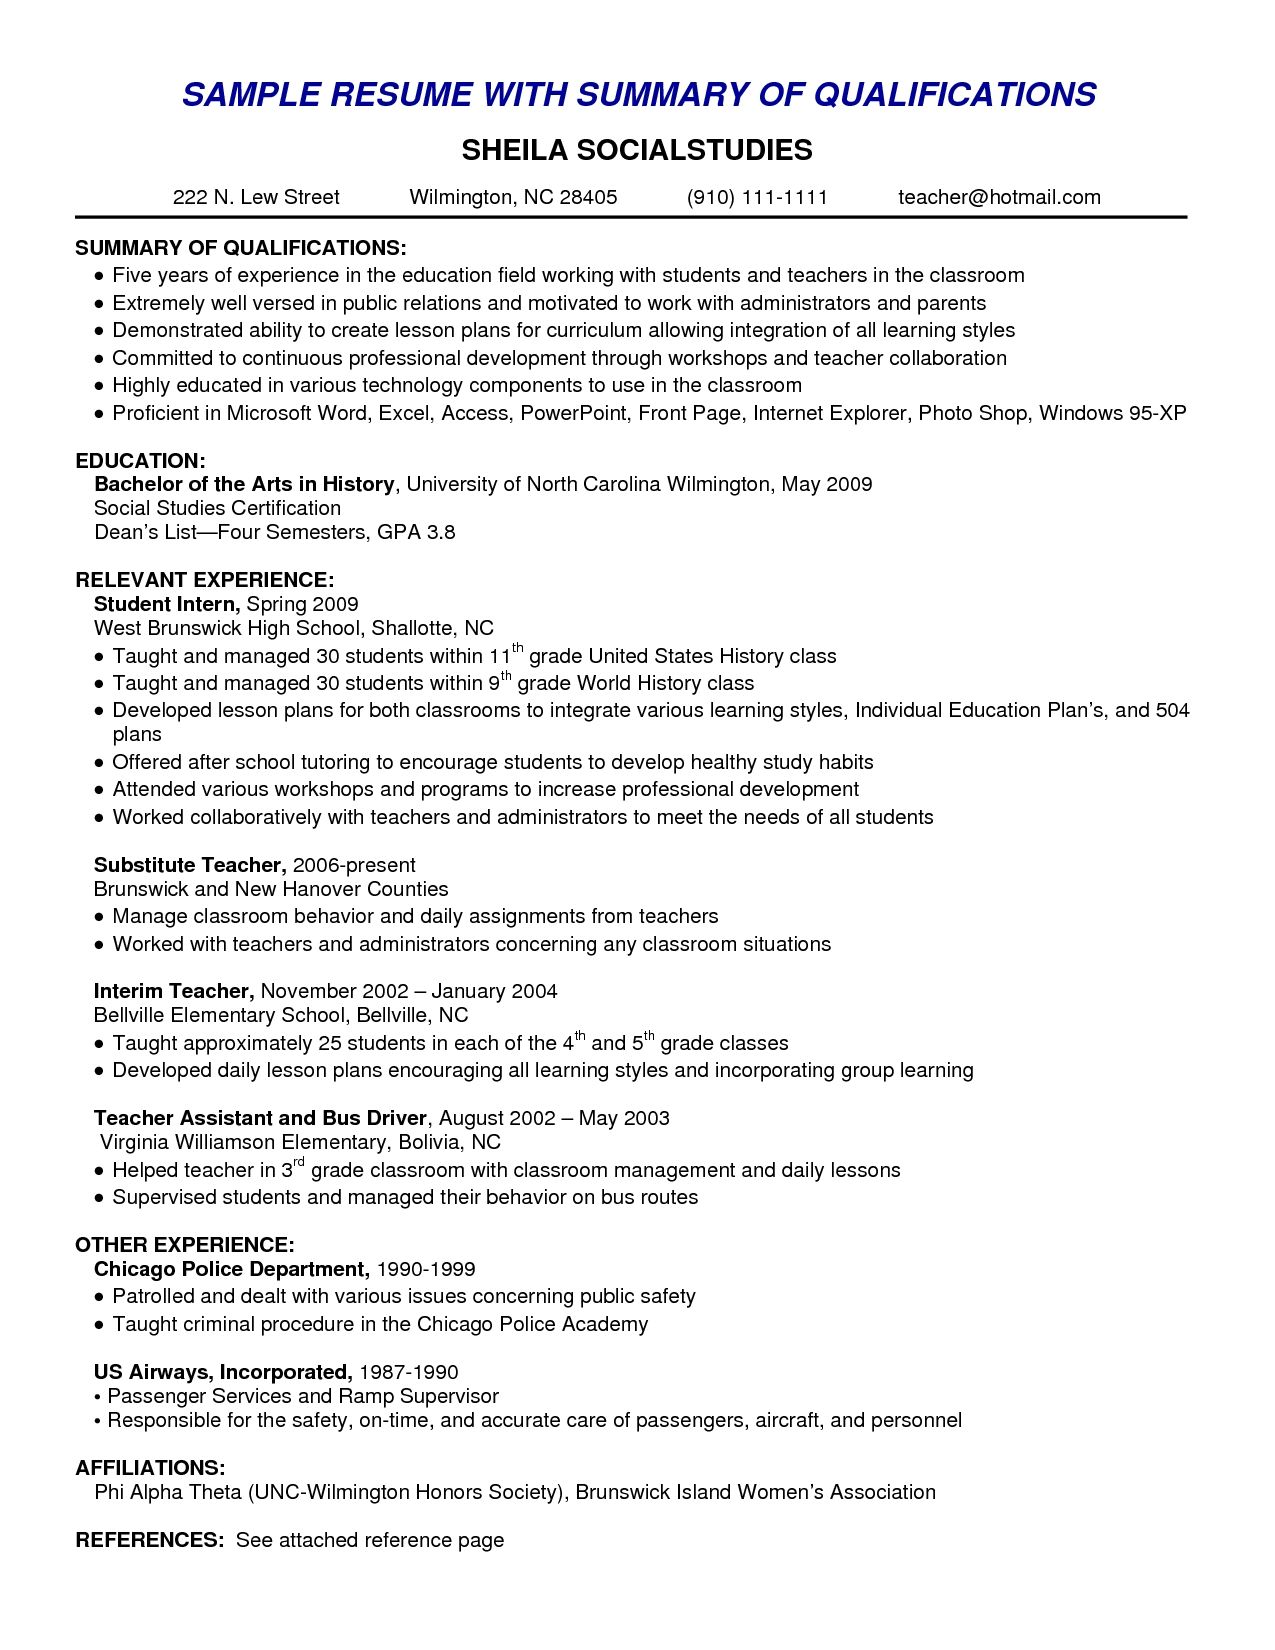 Elegant Skills Summary For Resume Examples